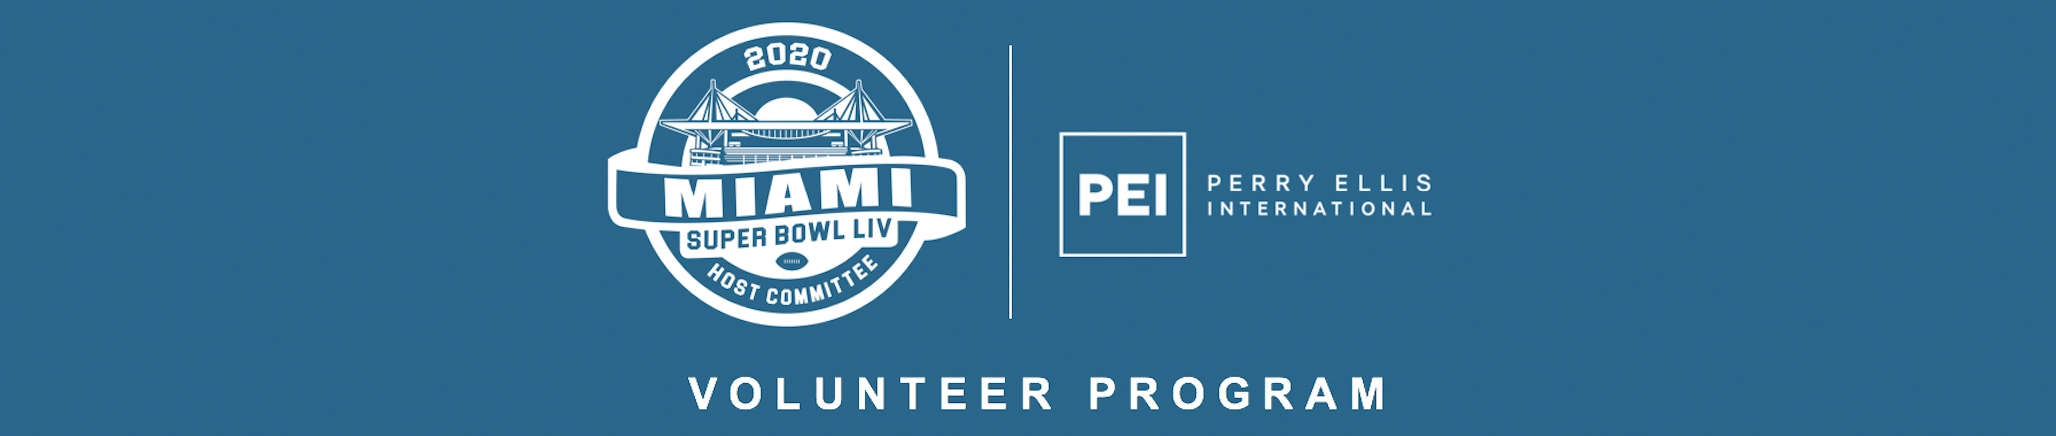 Miami Super Bowl Volunteer Program | Register regarding Volunteer For Miami Super Bowl